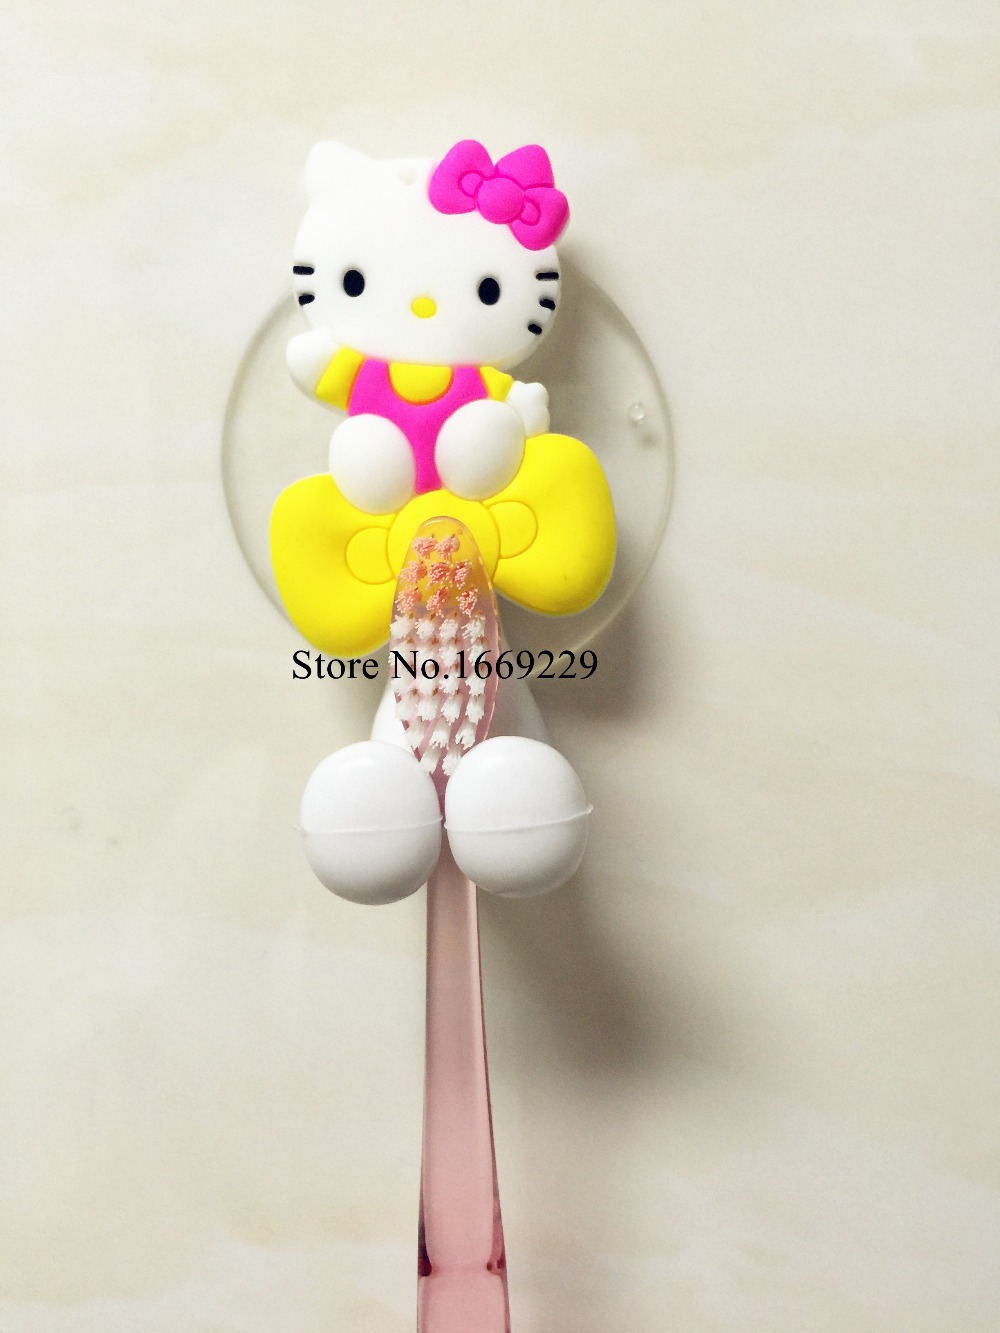 Cute Hello Kitty Cartoon suction cup toothbrush holder suction hooks bathroom set accessories(China (Mainland))